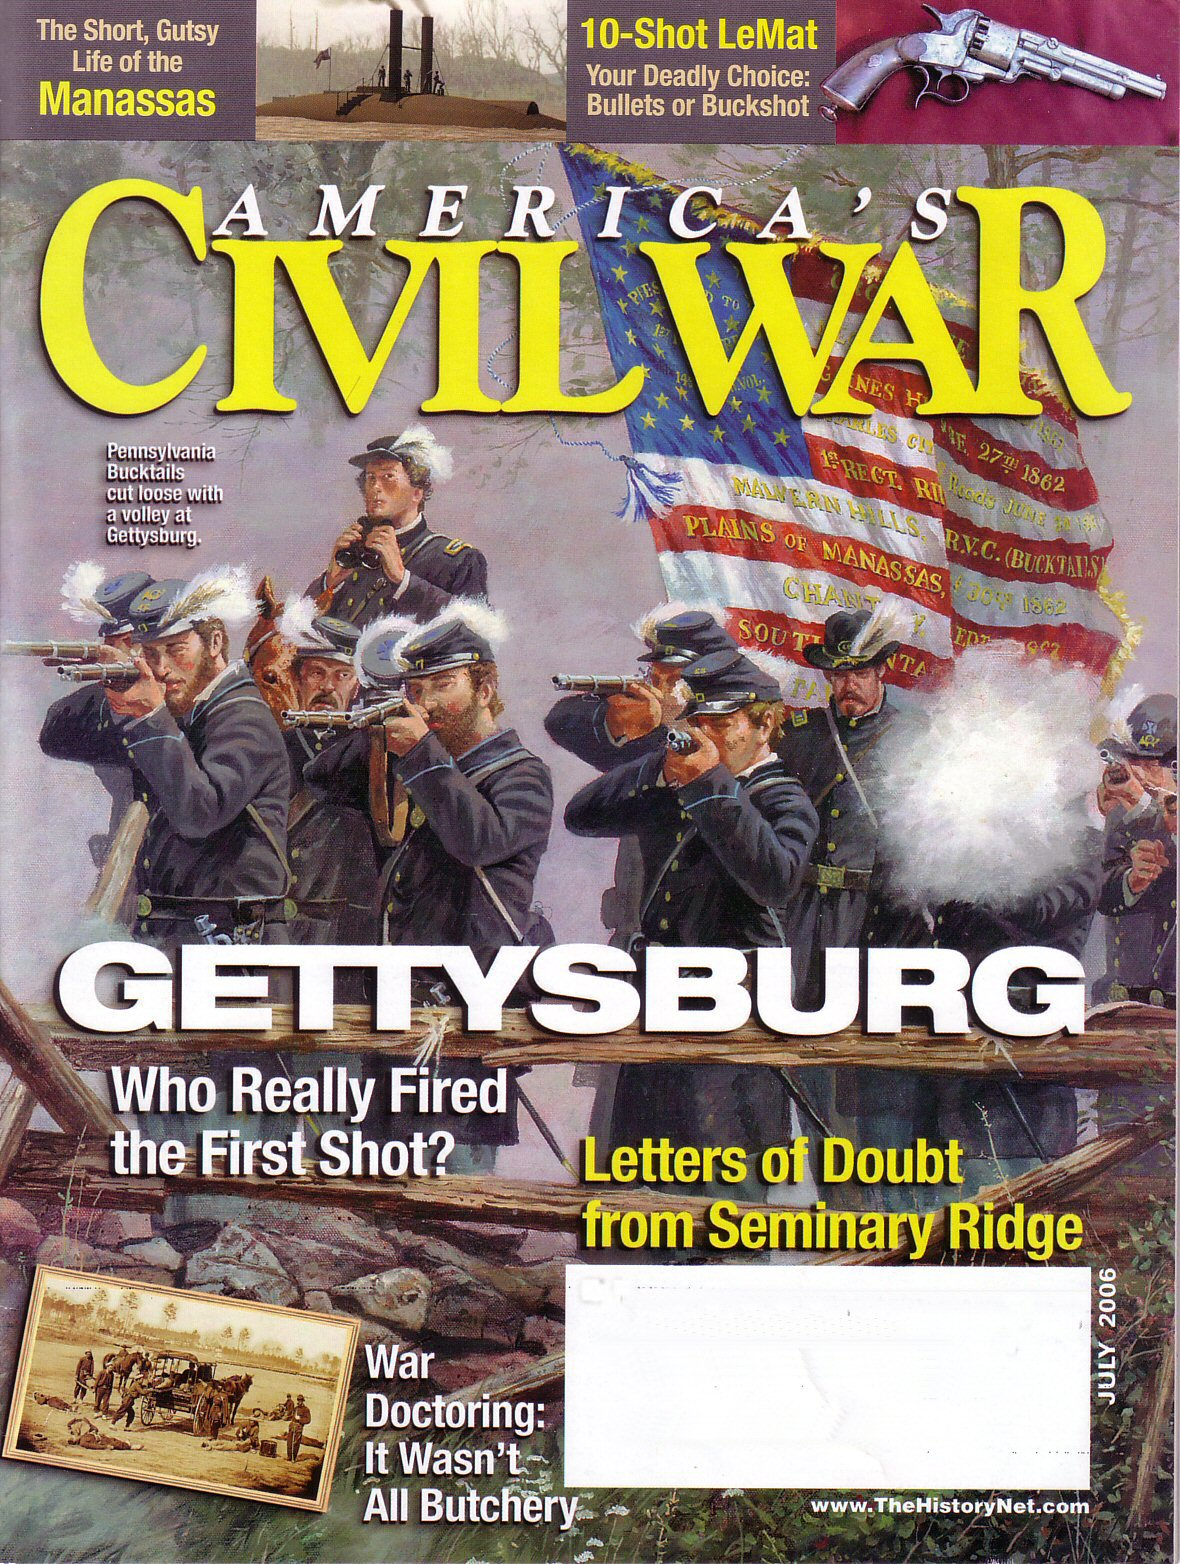 Americas Civil War, Volume 19, Number 3 (July 2006)